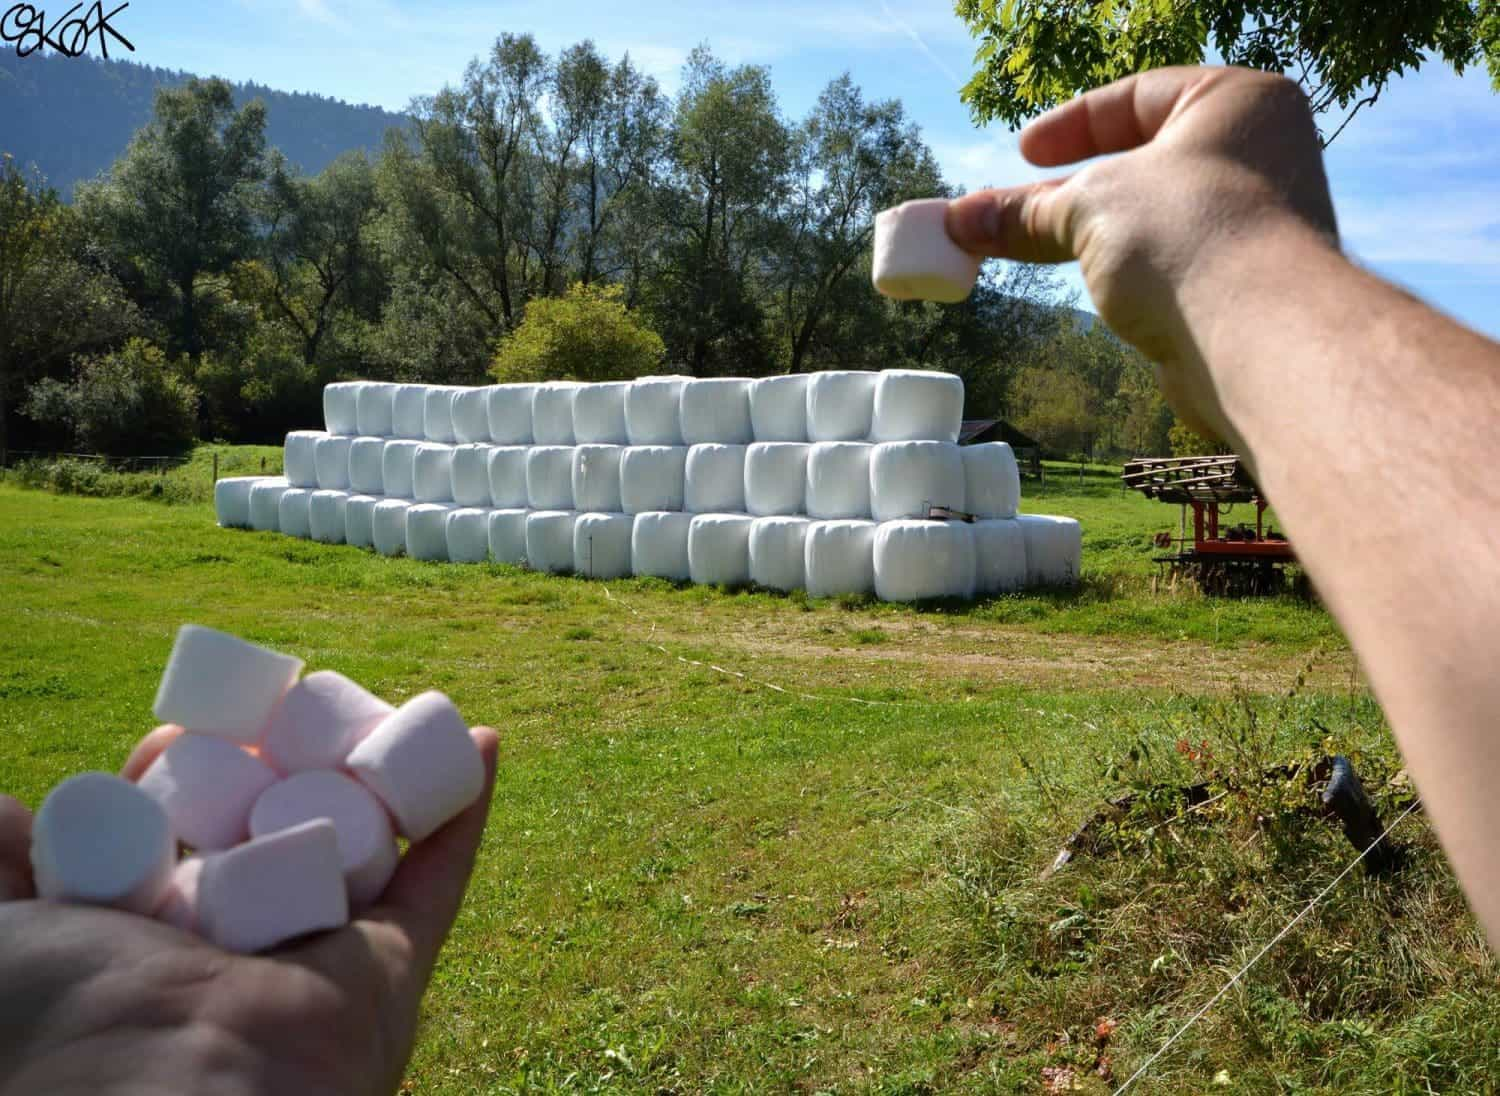 hooibalen en marshmallows